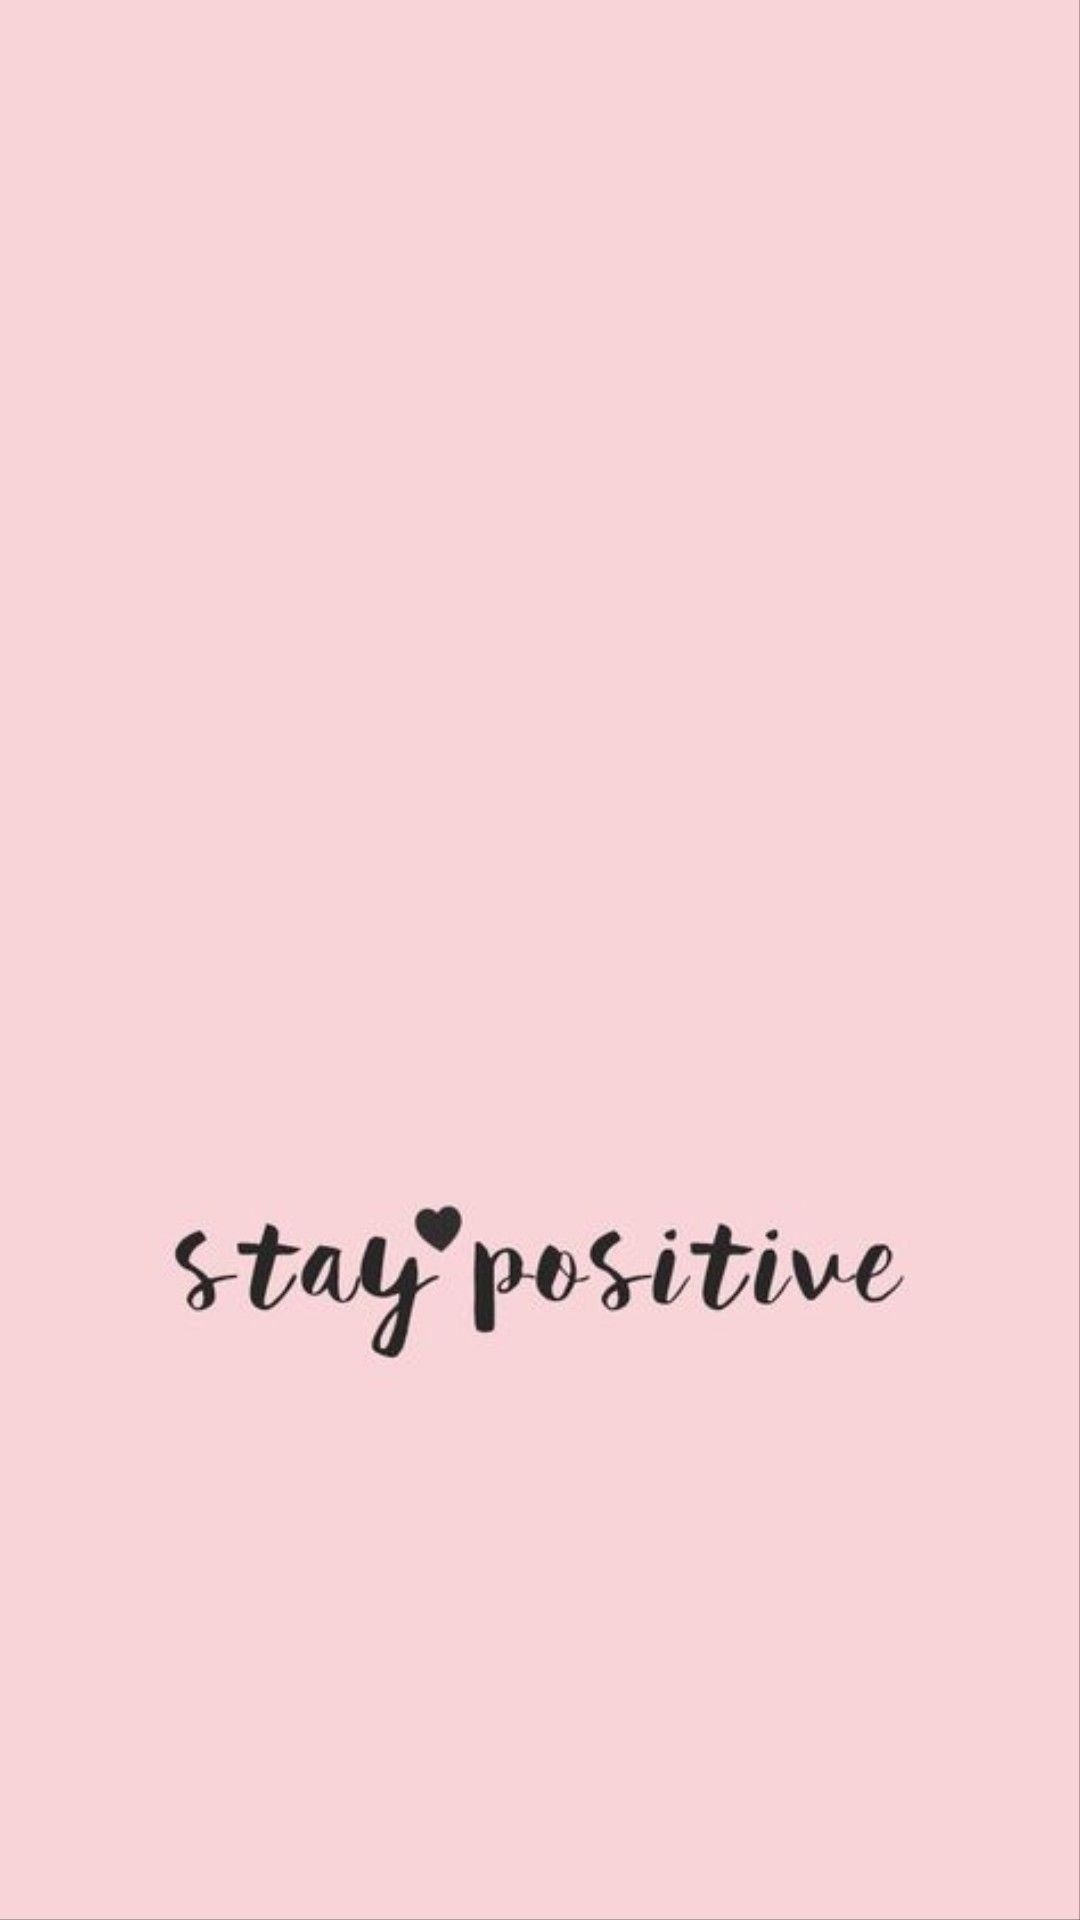 Simple And Cute Wallpapers Iphone Wallpaper Quotes Girly Iphone Wallpaper Quotes Inspirational Wallpaper Quotes